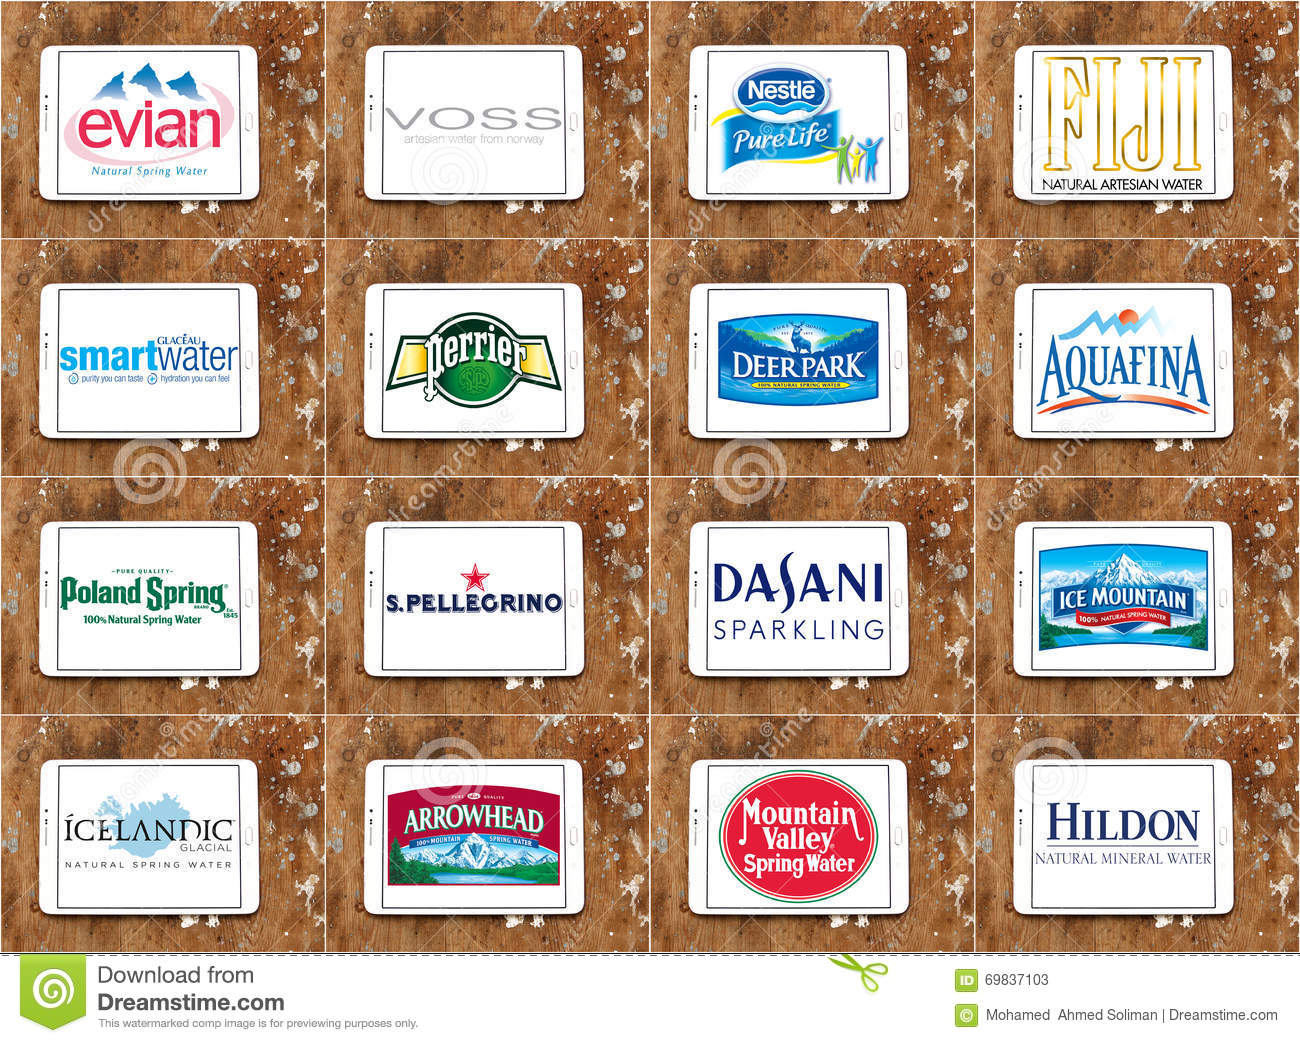 Mineral Water Brands And Logos Editorial Stock Photo - Image of